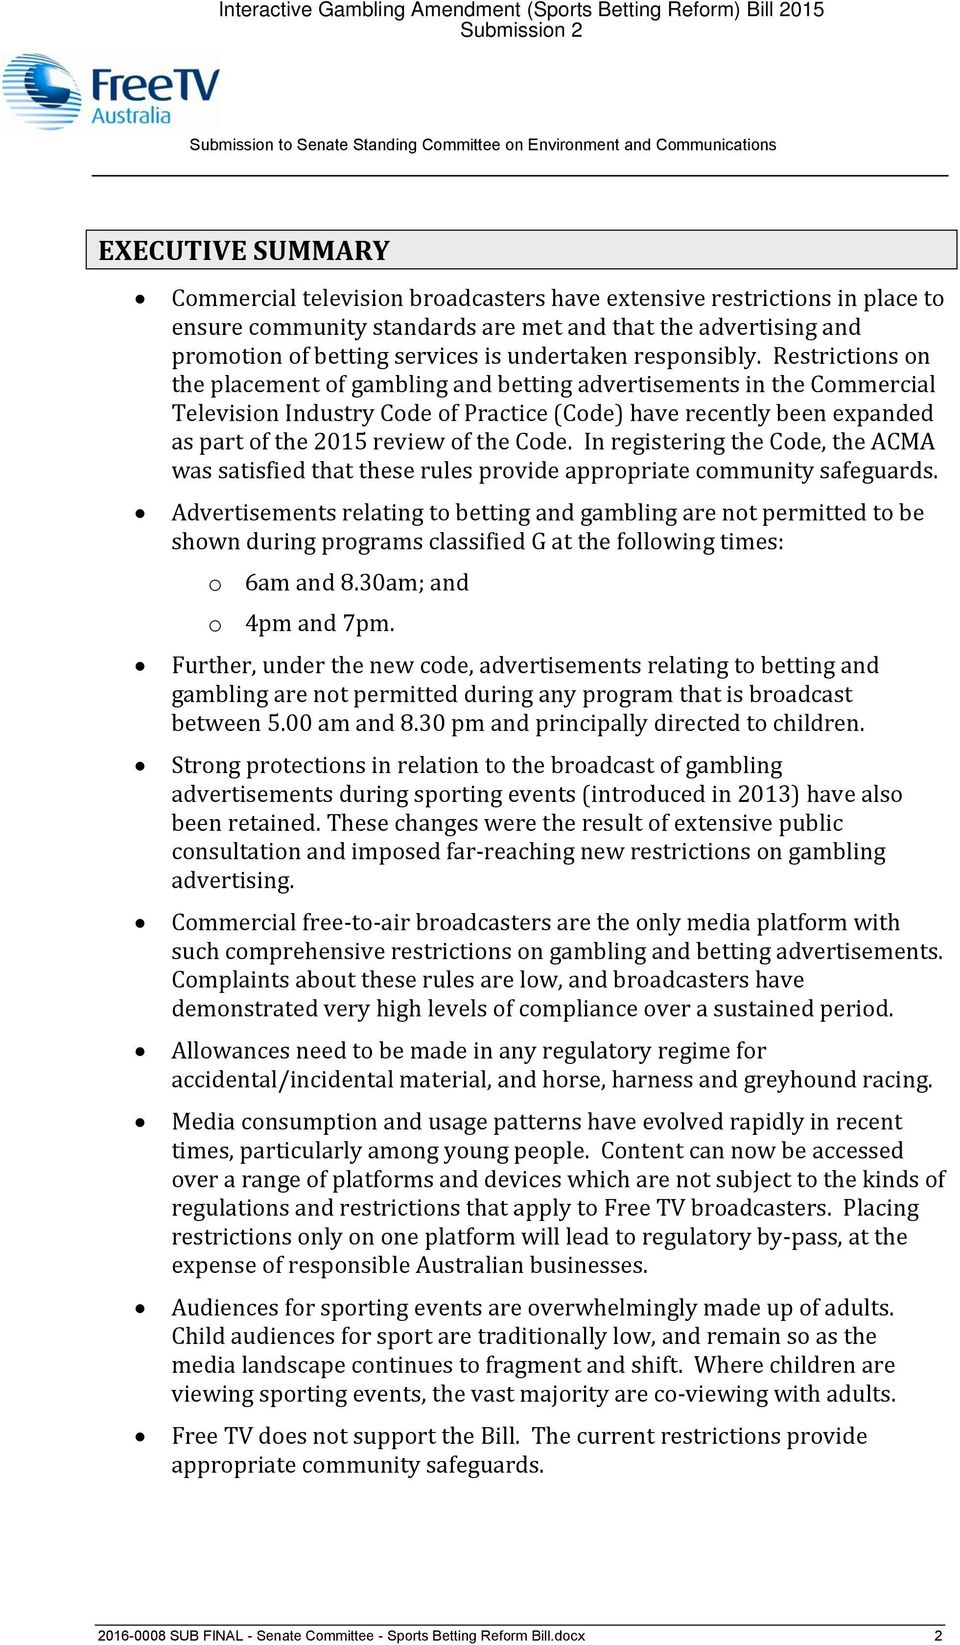 Restrictions on the placement of gambling and betting advertisements in the Commercial Television Industry Code of Practice (Code) have recently been expanded as part of the 2015 review of the Code.